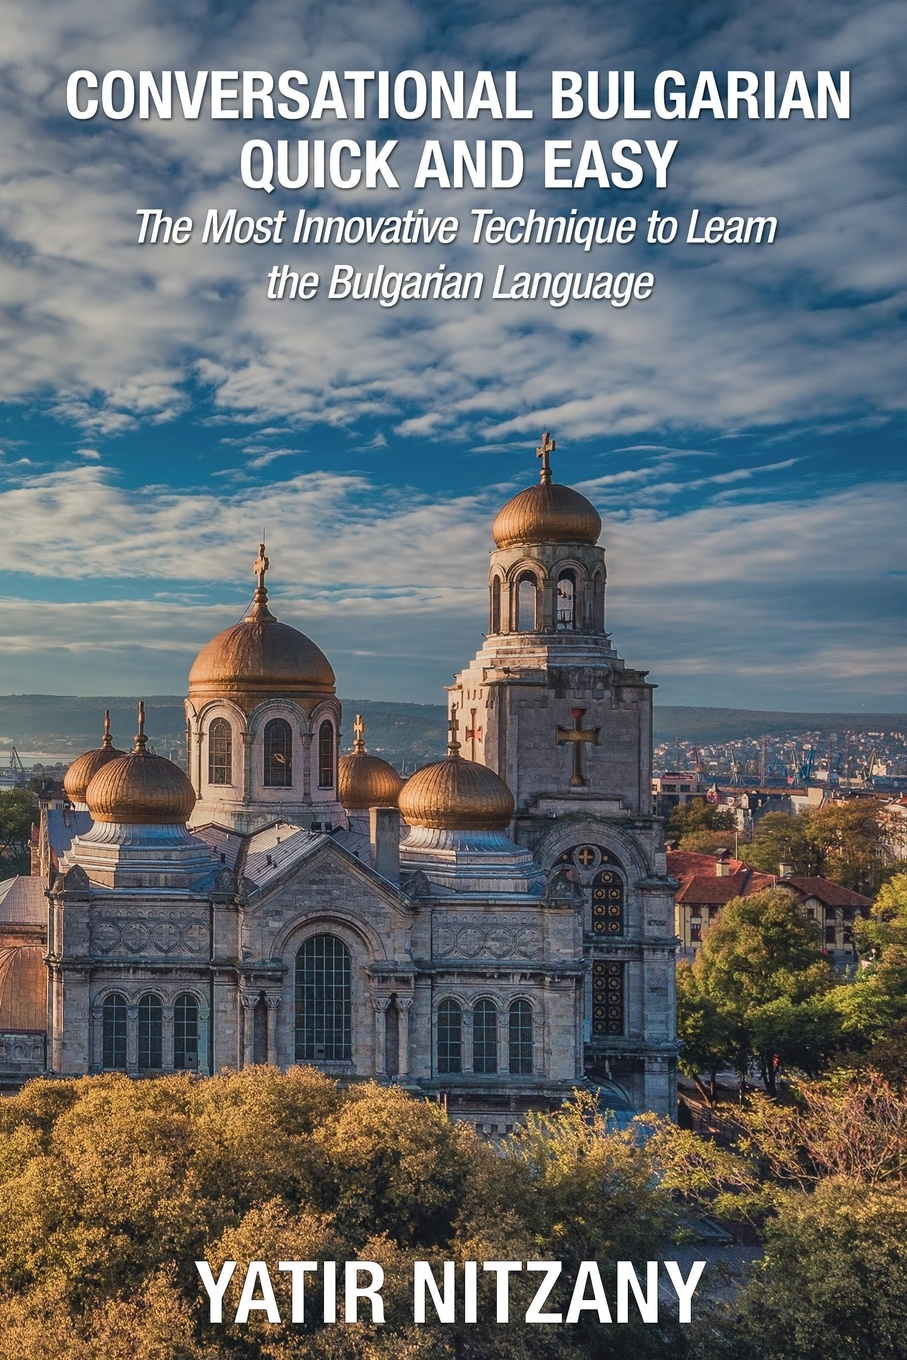 Yatir Nitzany Conversational Bulgarian Quick and Easy. The Most Innovative Technique to Learn the Bulgarian Language